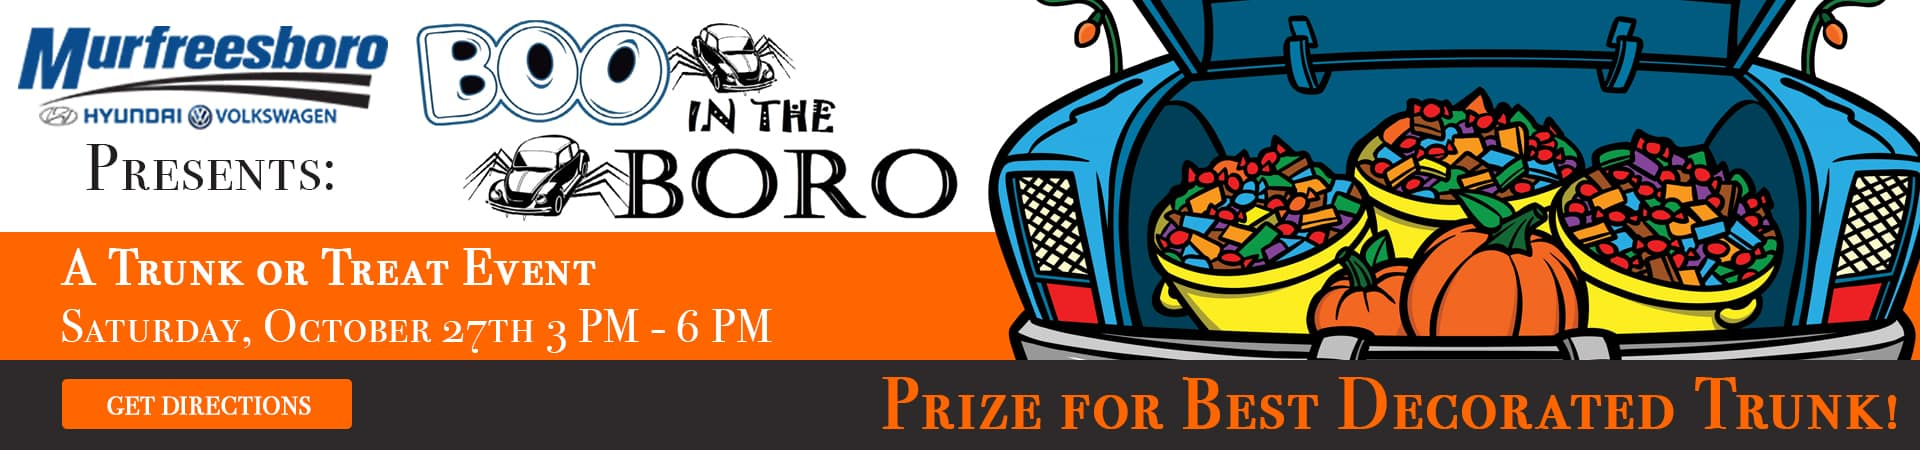 Join us for our Trunk or Treat Event on Saturday, October 27th in Murfreesboro TN